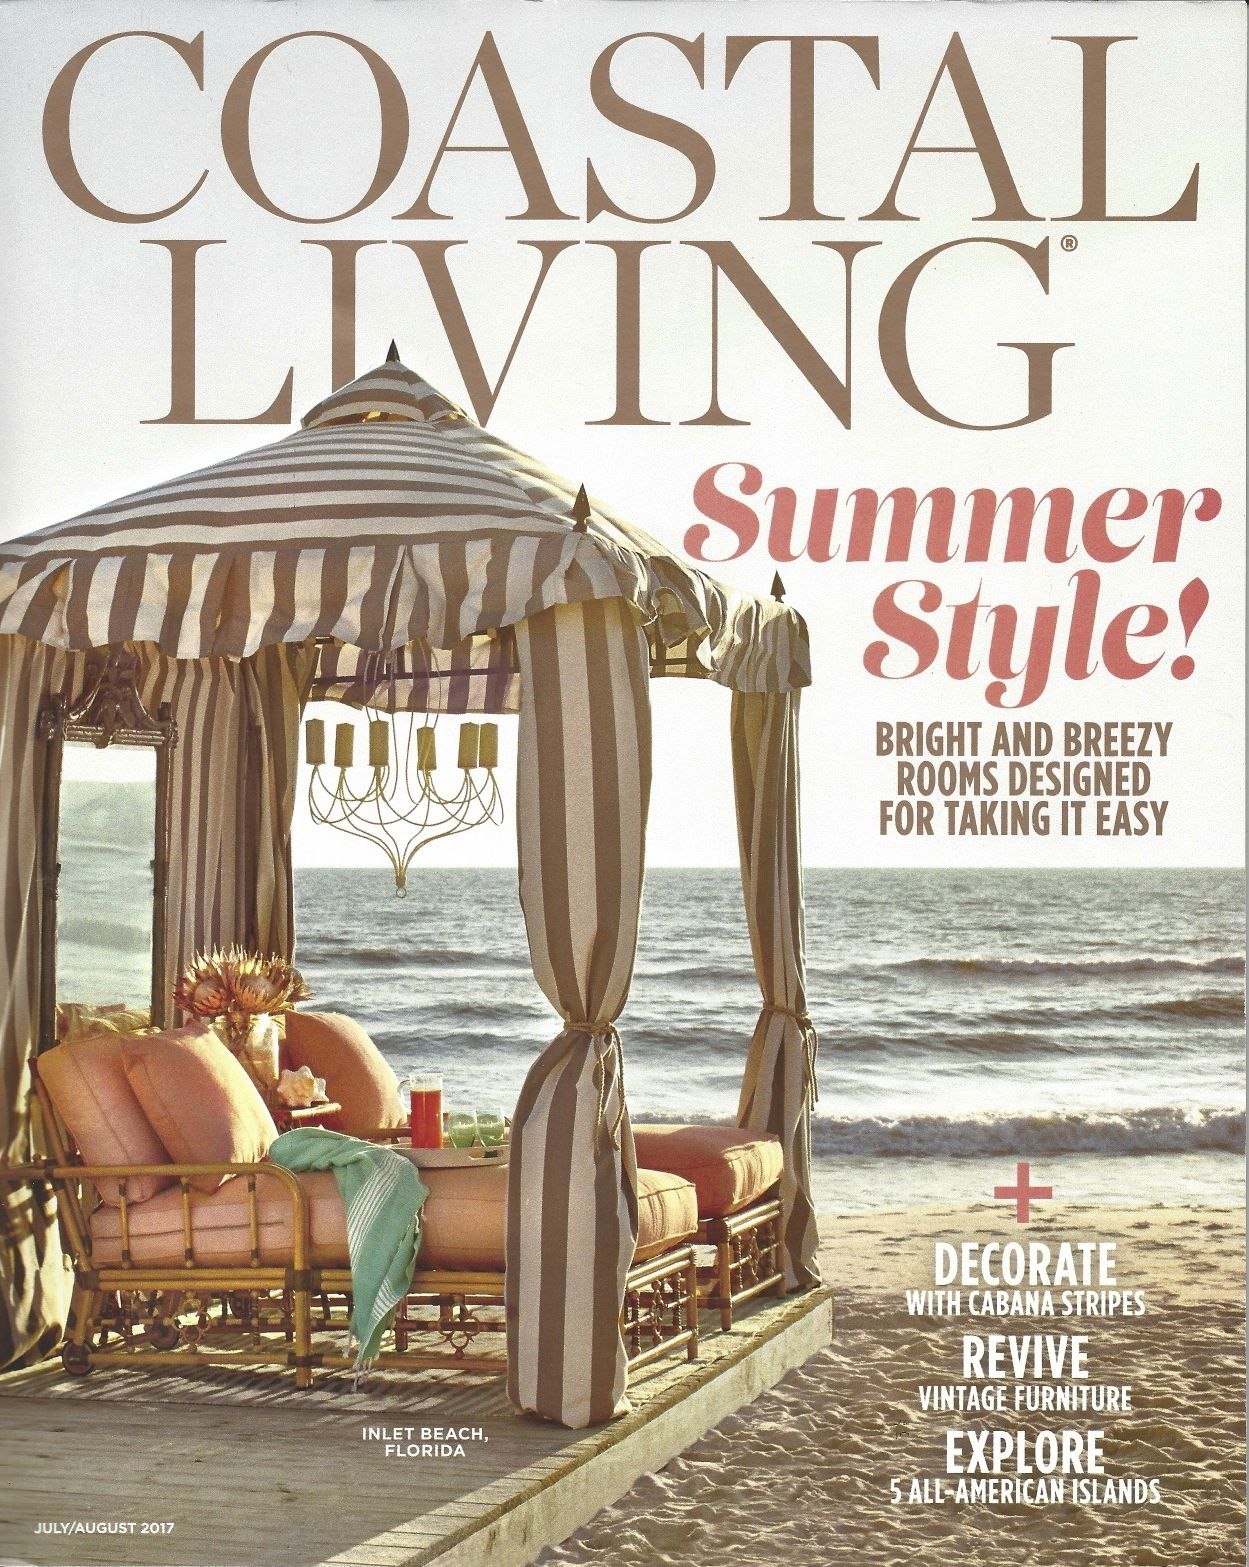 Vintage Sand Pails Were Featured In The Summer (July/August 2017) Issue Of  Coastal Living Magazine. Ruby Lane Shop, Hoarders, Vintage Sand Pail Was ...